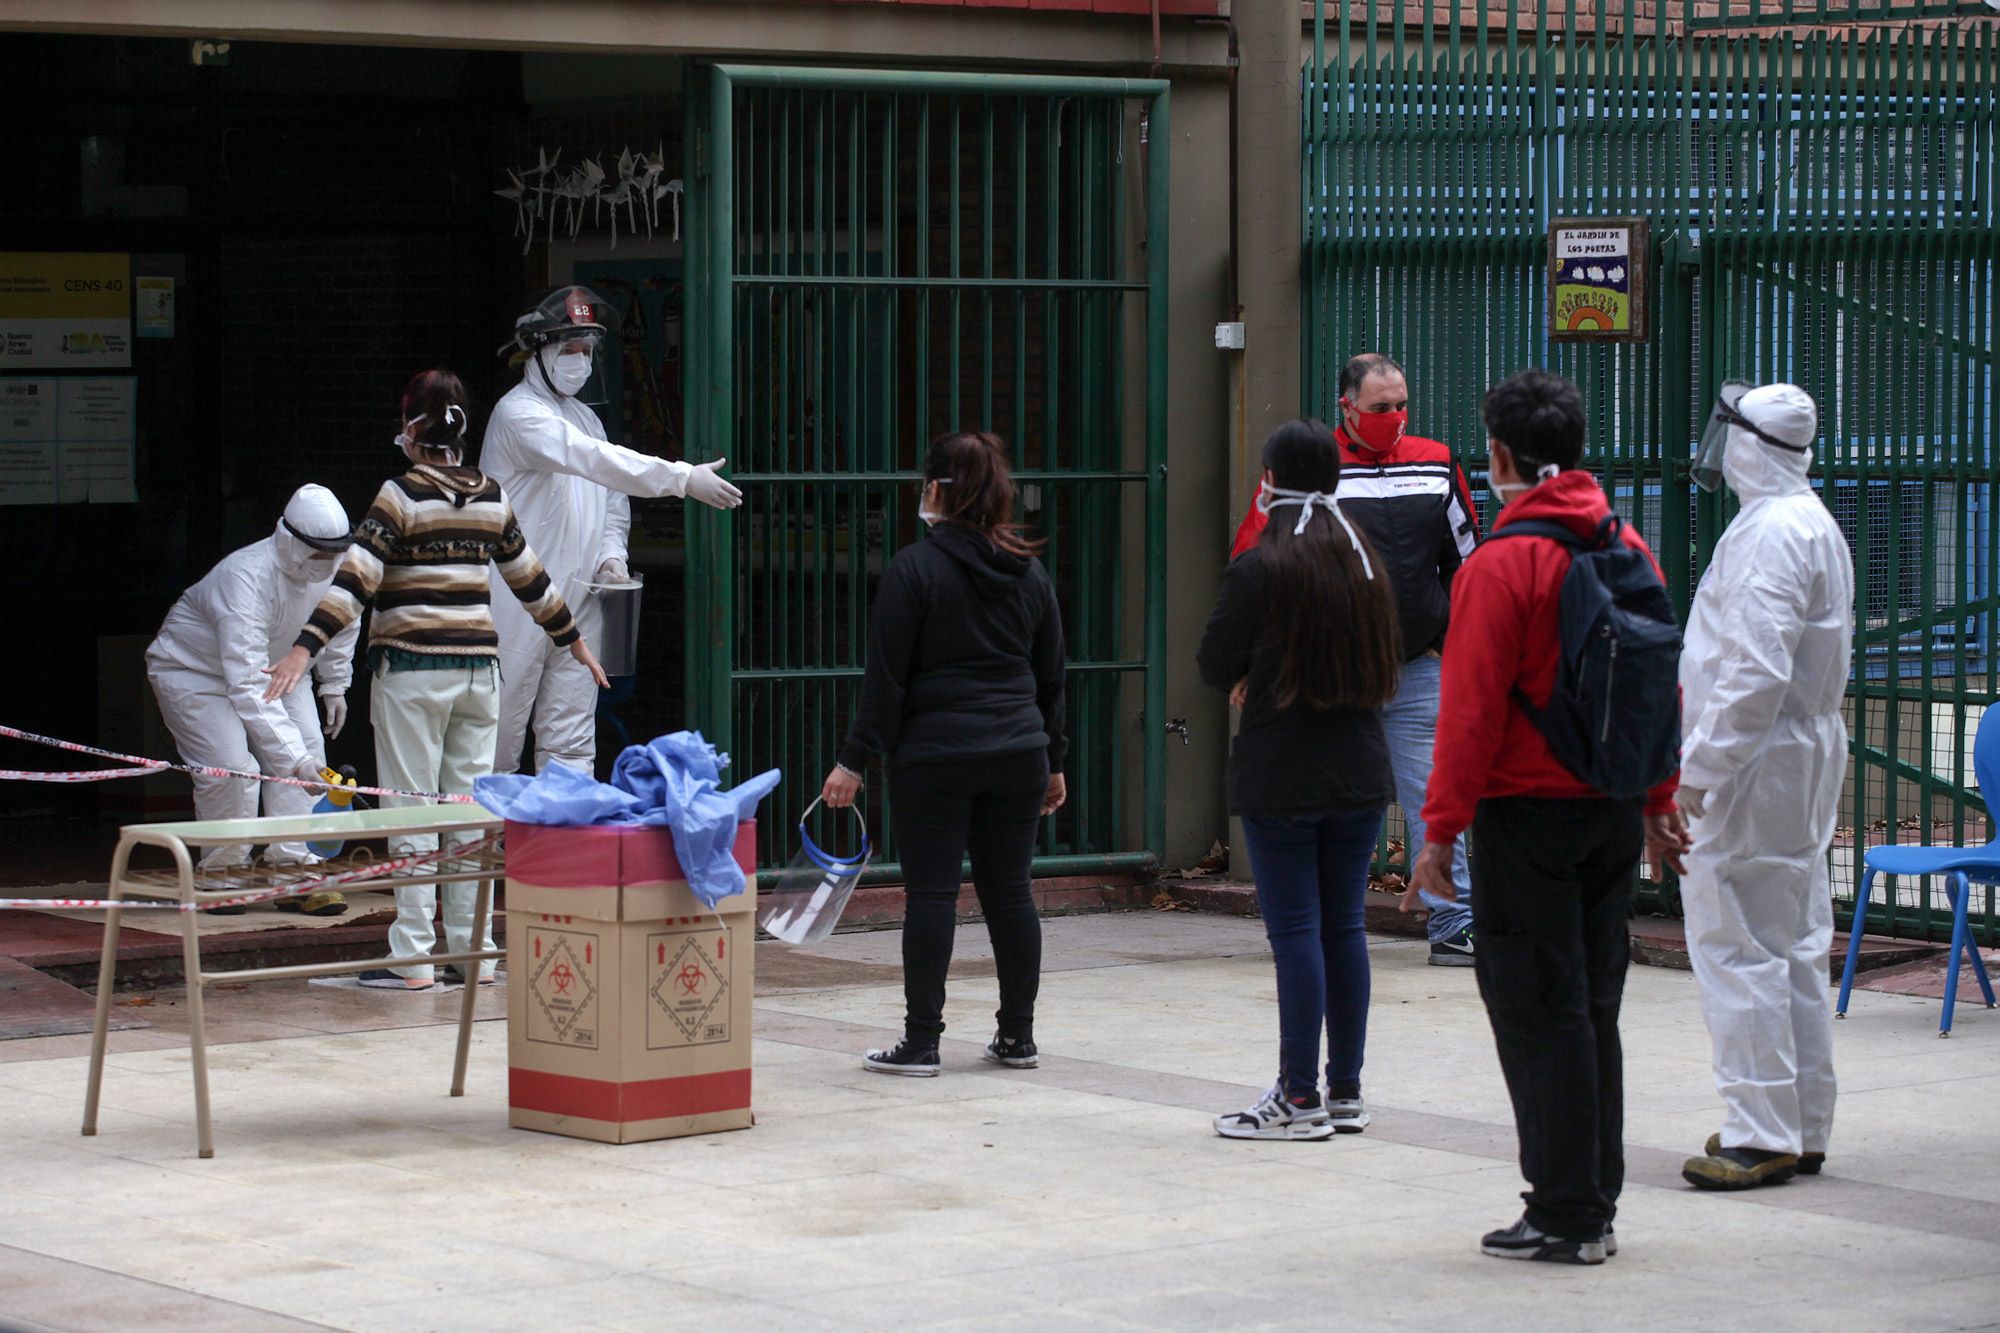 Members of Plan DETECT operation test people in the Palermo neighborhood for symptoms compatible with COVID-19 in Buenos Aires on June 24.